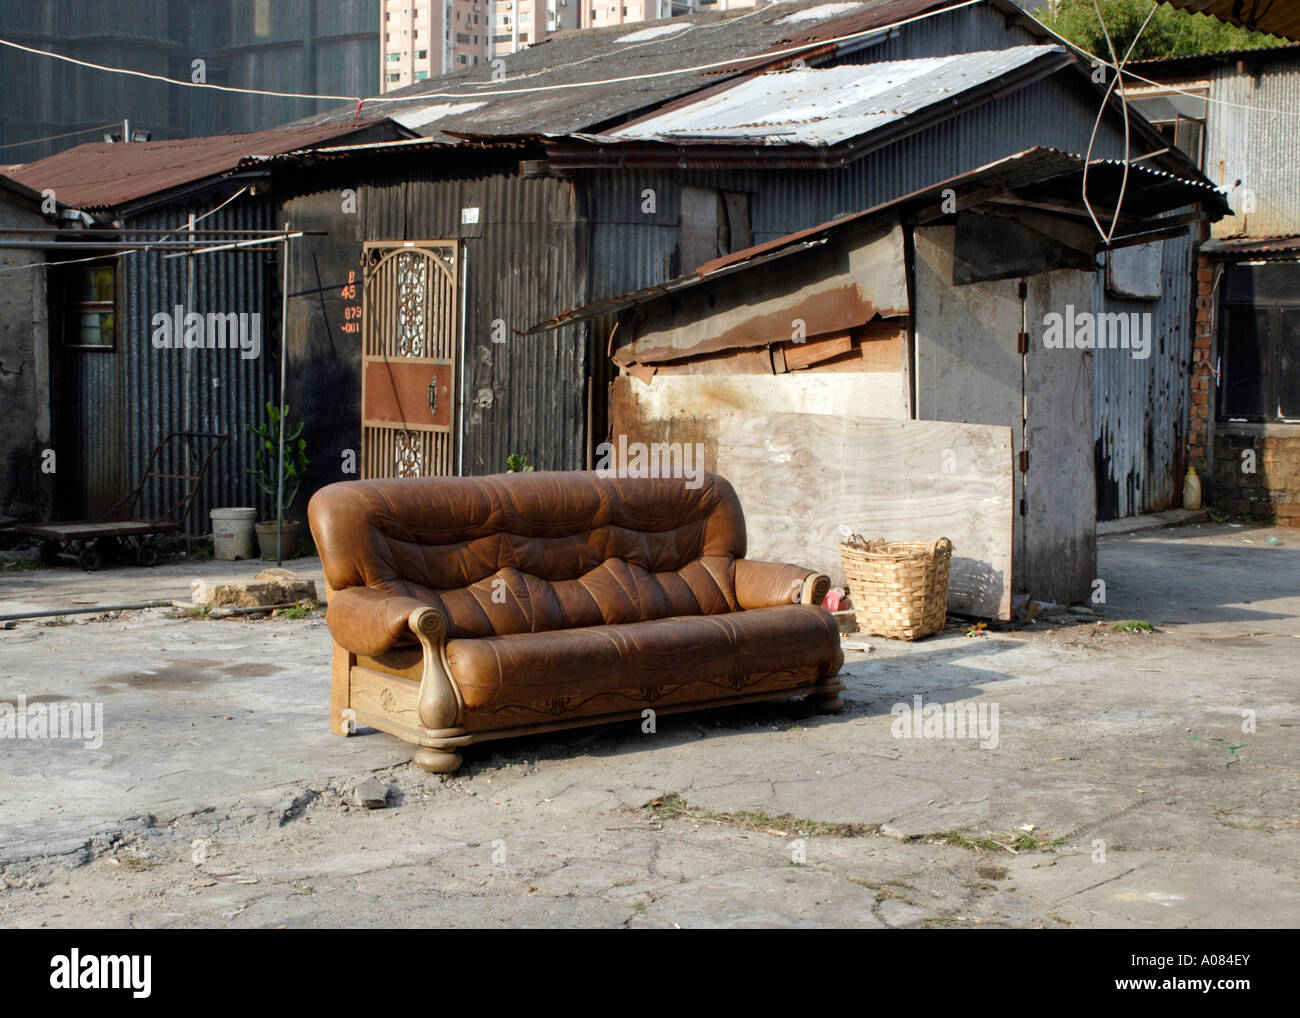 Old sofa, building and squatters shack on the back streets of Taipa Island, Macau, South China - Stock Image